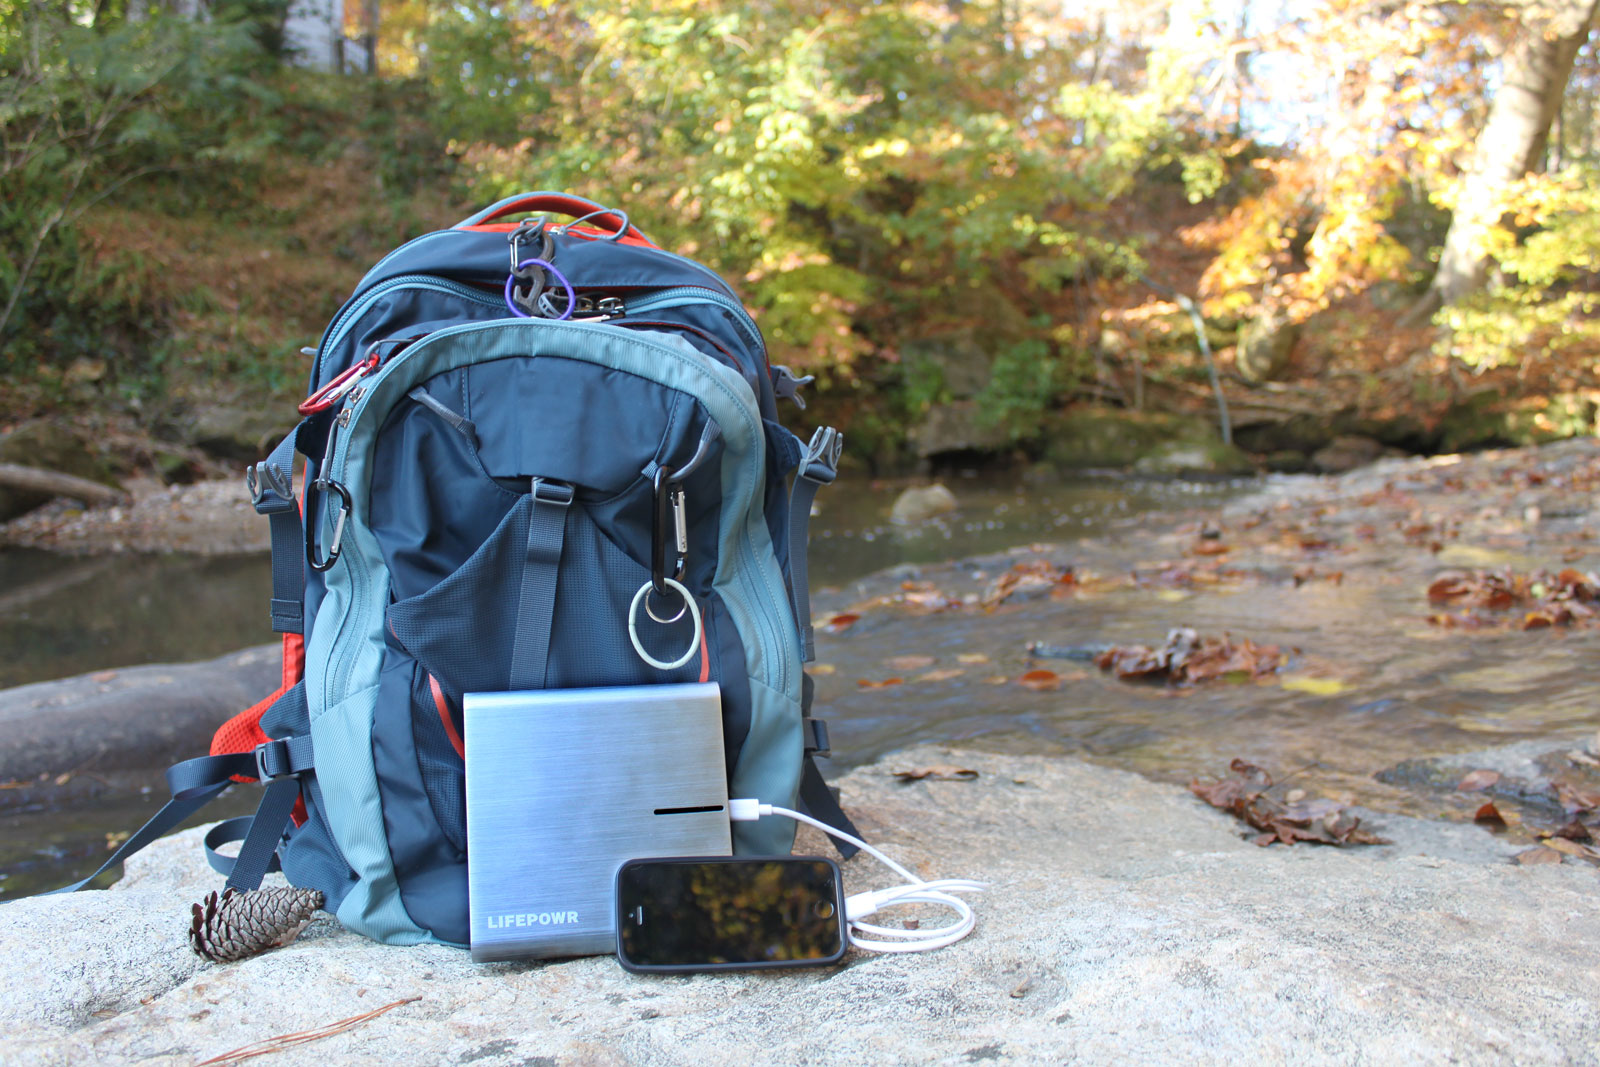 Image of Lifepowr A3 mobile power supply in front of a backpack and camp by a river.